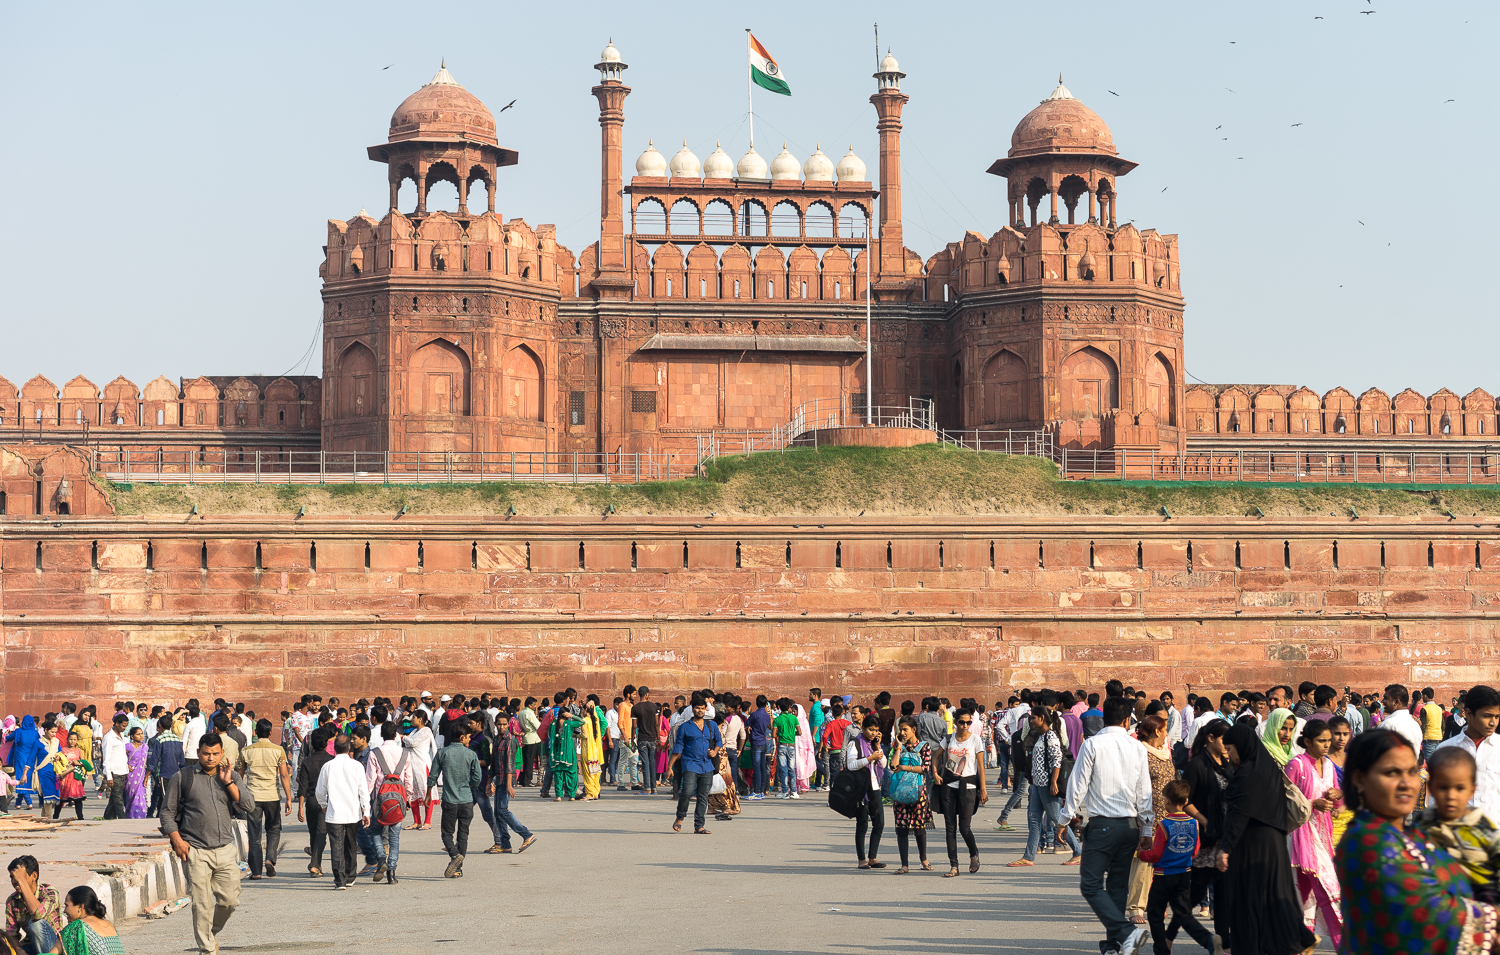 THE VIEW OUTSIDE THE RED FORT // INDIA 2015